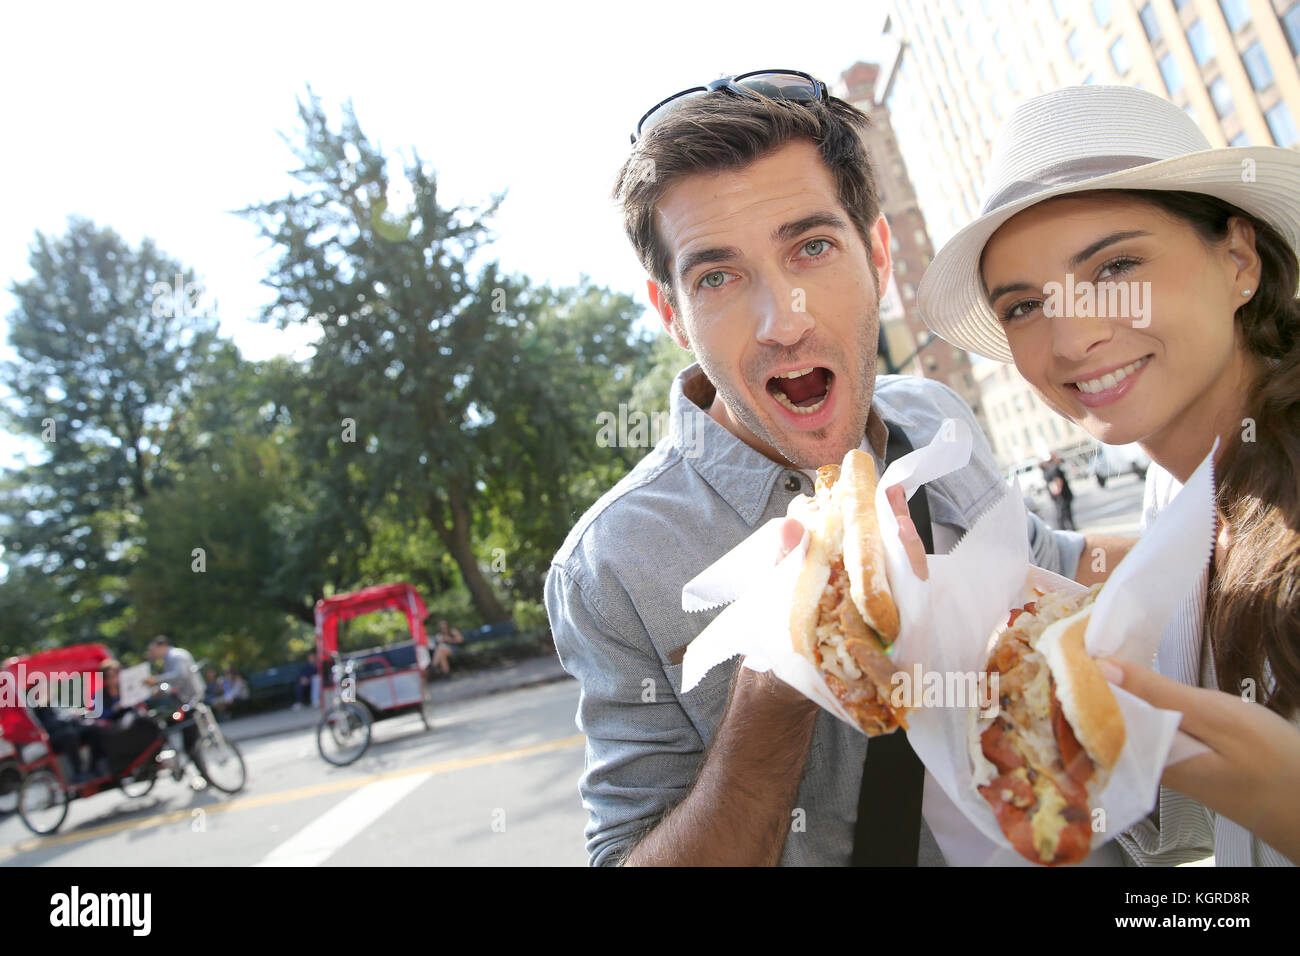 Tourists in New York city eating hot dogs - Stock Image